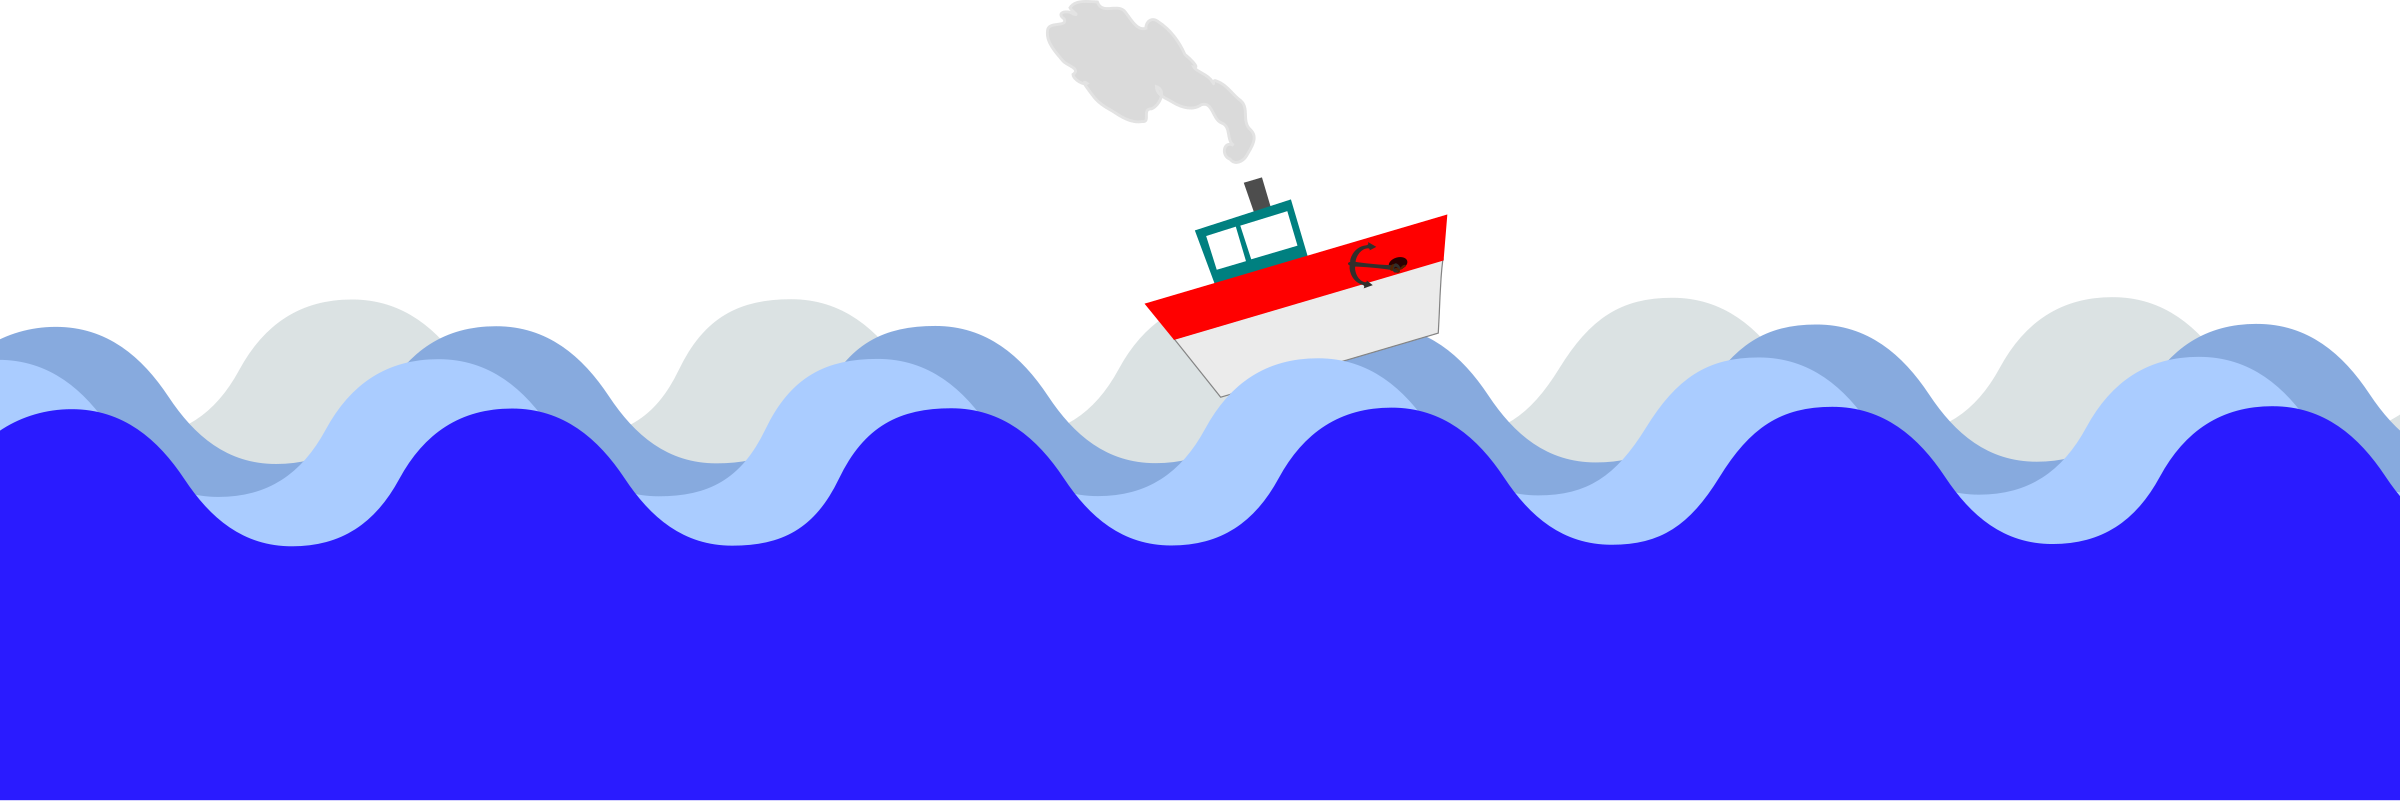 clipart boat at sea rh openclipart org sea clipart black and white sea clipart black and white